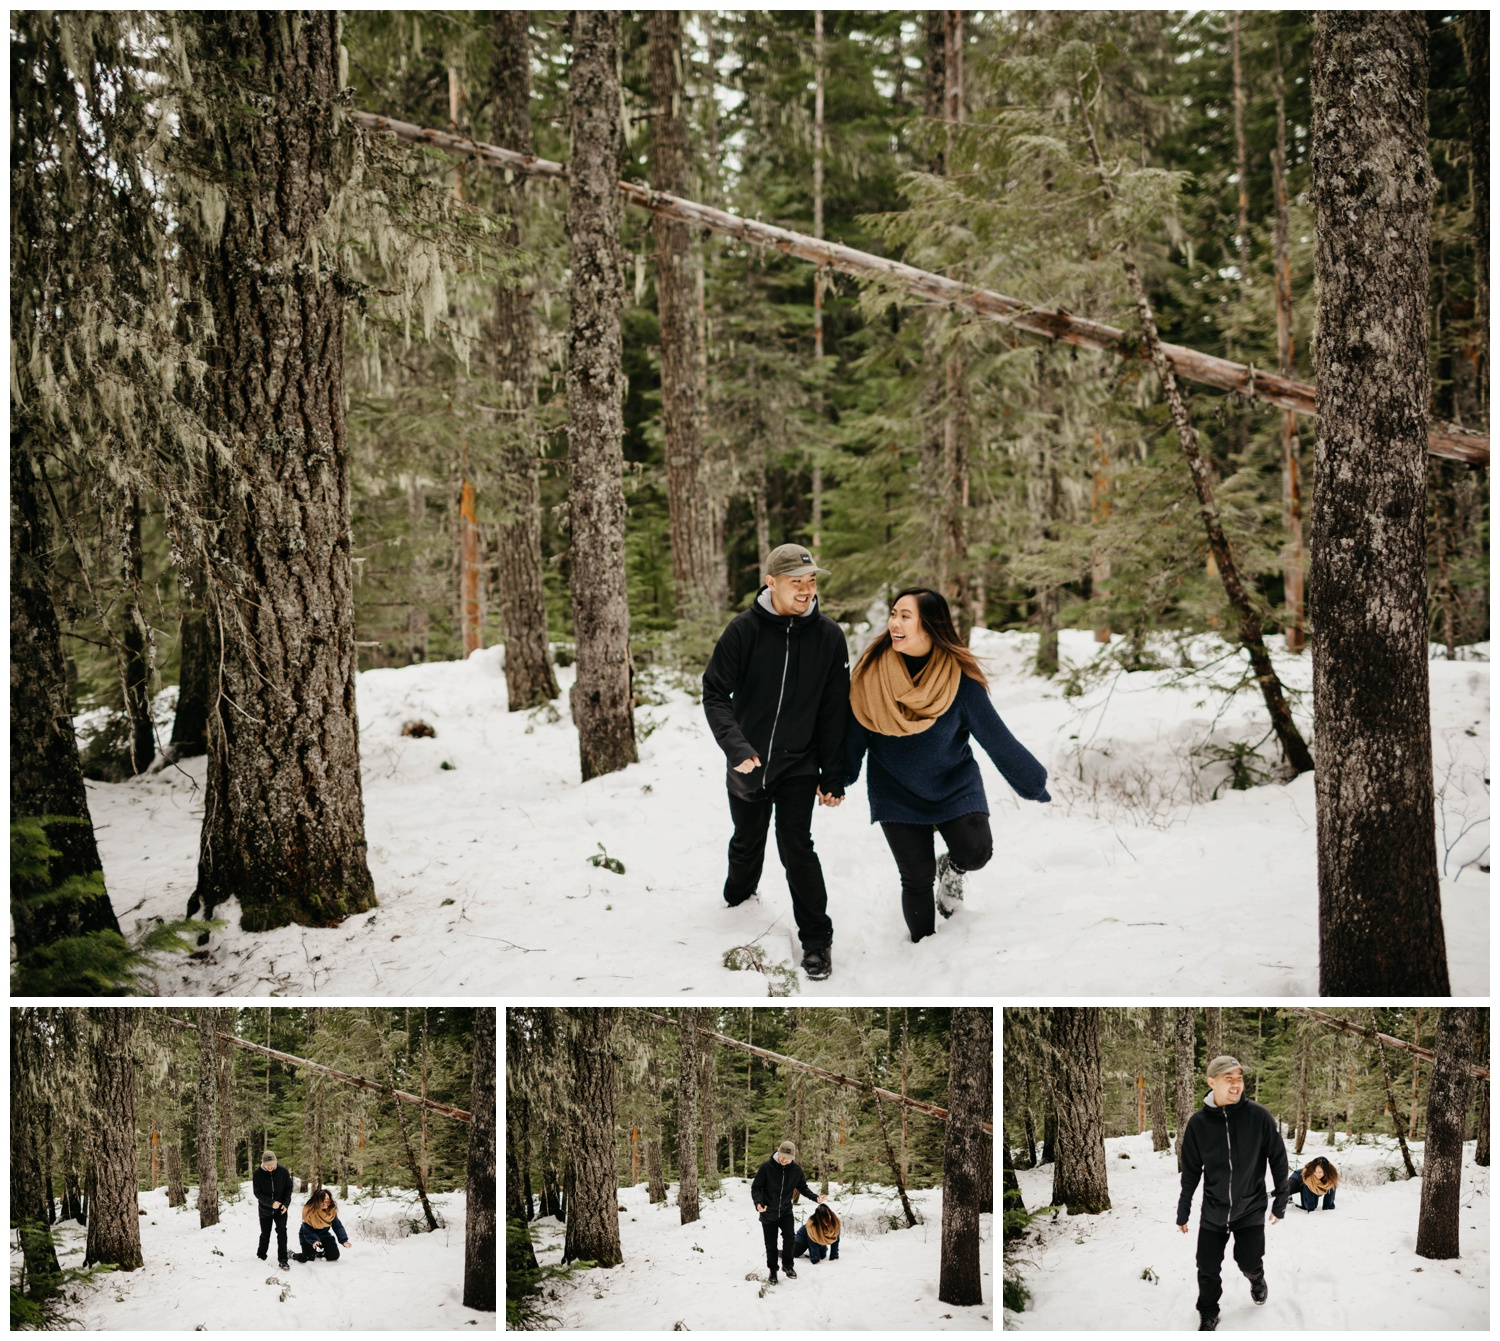 trillium_lake_engagement_shoot_0007.jpg